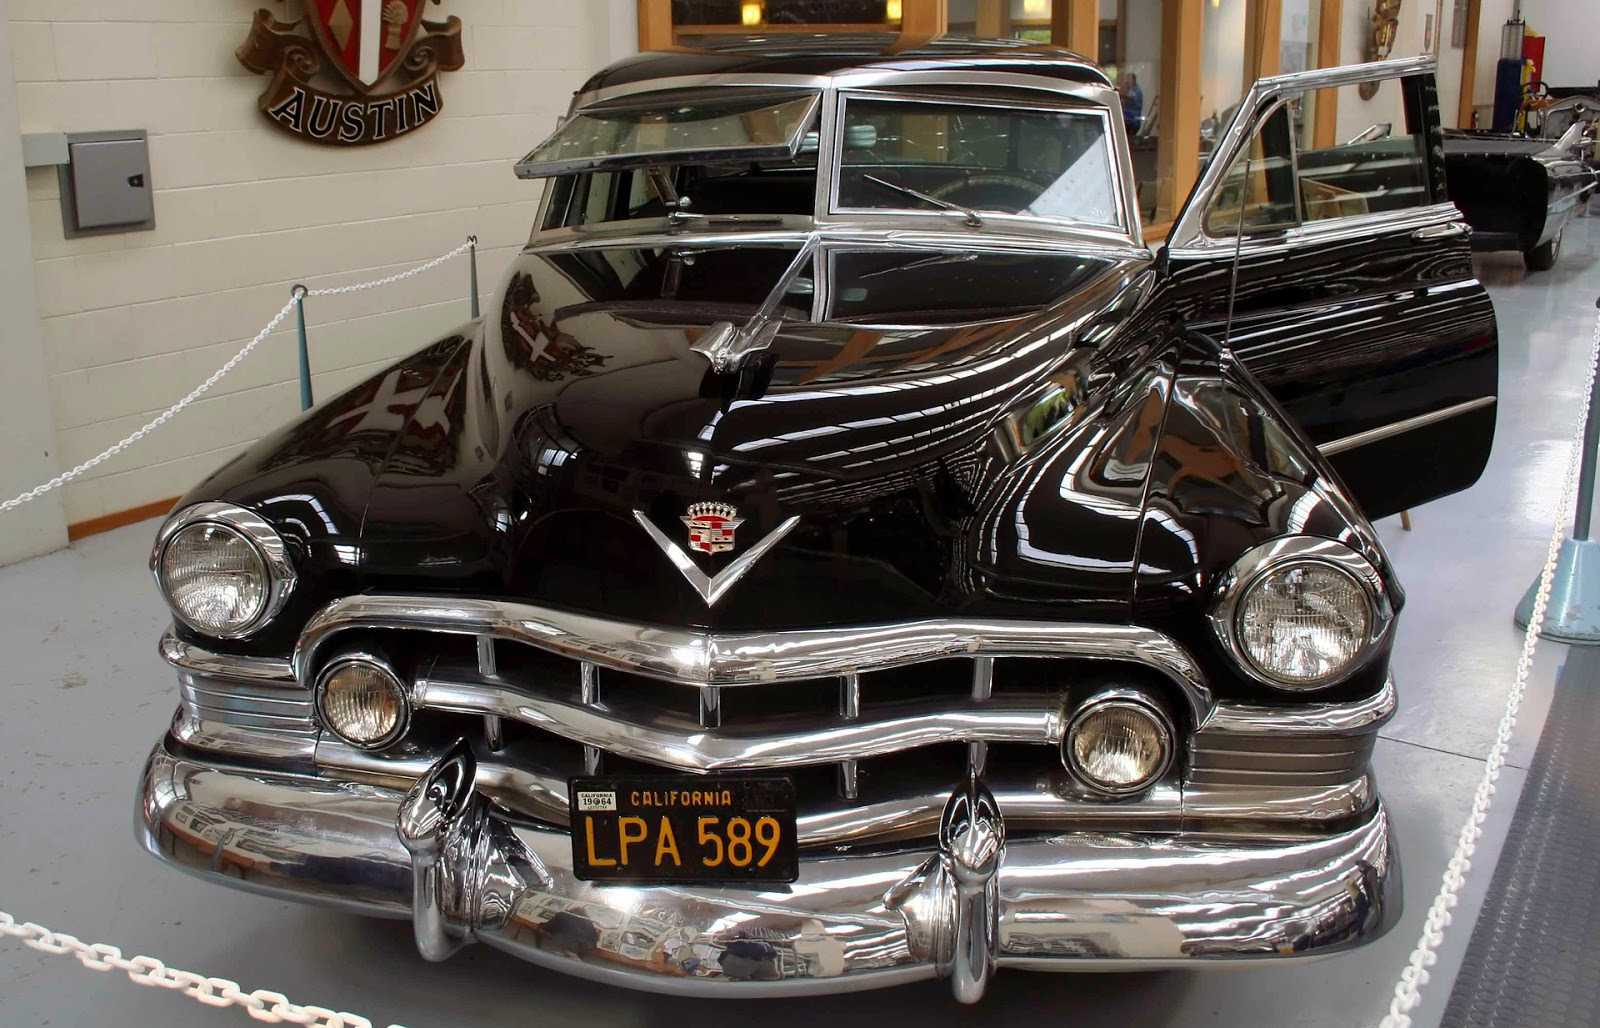 transpress nz: the Mickey Cohen gangster Cadillac